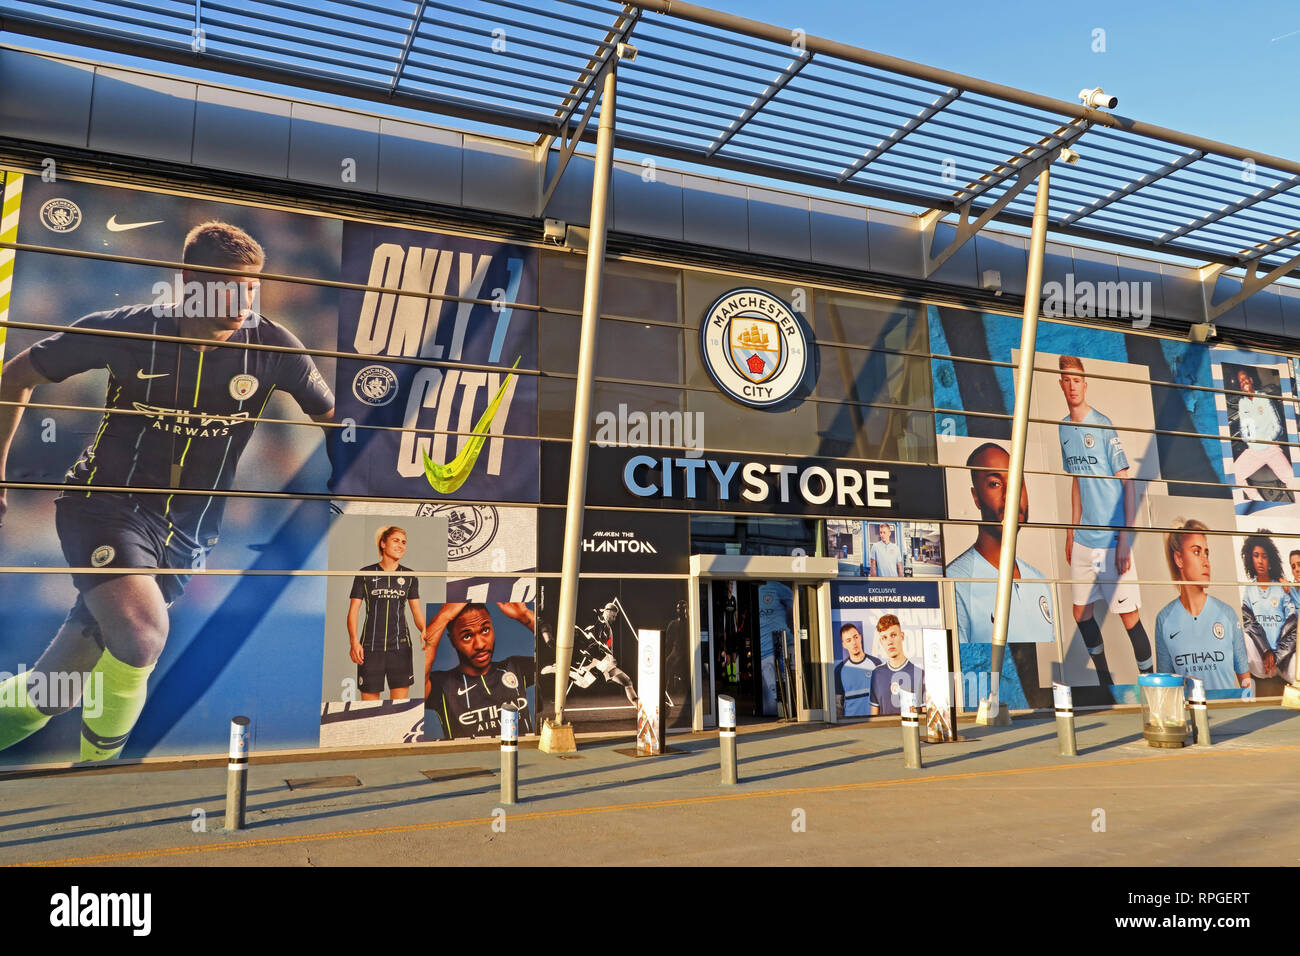 CityStore at The Etihad Campus, Manchester City, MCFC, UK - Stock Image